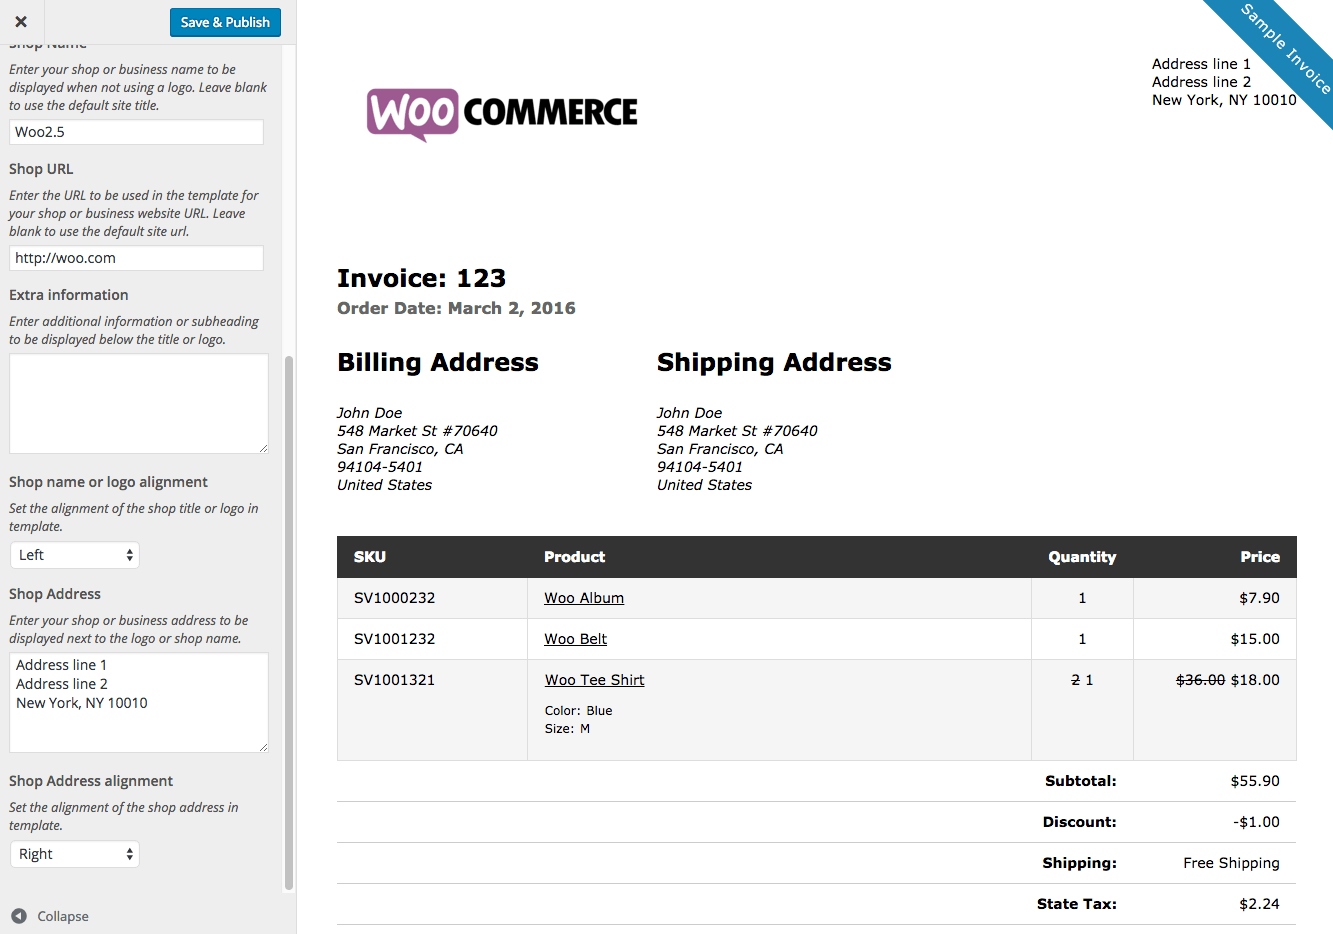 Atvingus  Mesmerizing Woocommerce Print Invoices Amp Packing Lists  Woocommerce Docs With Lovable Woocommerce Print Invoices  Packing Lists Customizer With Agreeable Copy Of Blank Invoice Also Simple Invoice Templates In Addition Adp Payroll Invoice And Quick Books Invoicing As Well As Invoice Ideas Additionally Edi  Invoice From Docswoocommercecom With Atvingus  Lovable Woocommerce Print Invoices Amp Packing Lists  Woocommerce Docs With Agreeable Woocommerce Print Invoices  Packing Lists Customizer And Mesmerizing Copy Of Blank Invoice Also Simple Invoice Templates In Addition Adp Payroll Invoice From Docswoocommercecom